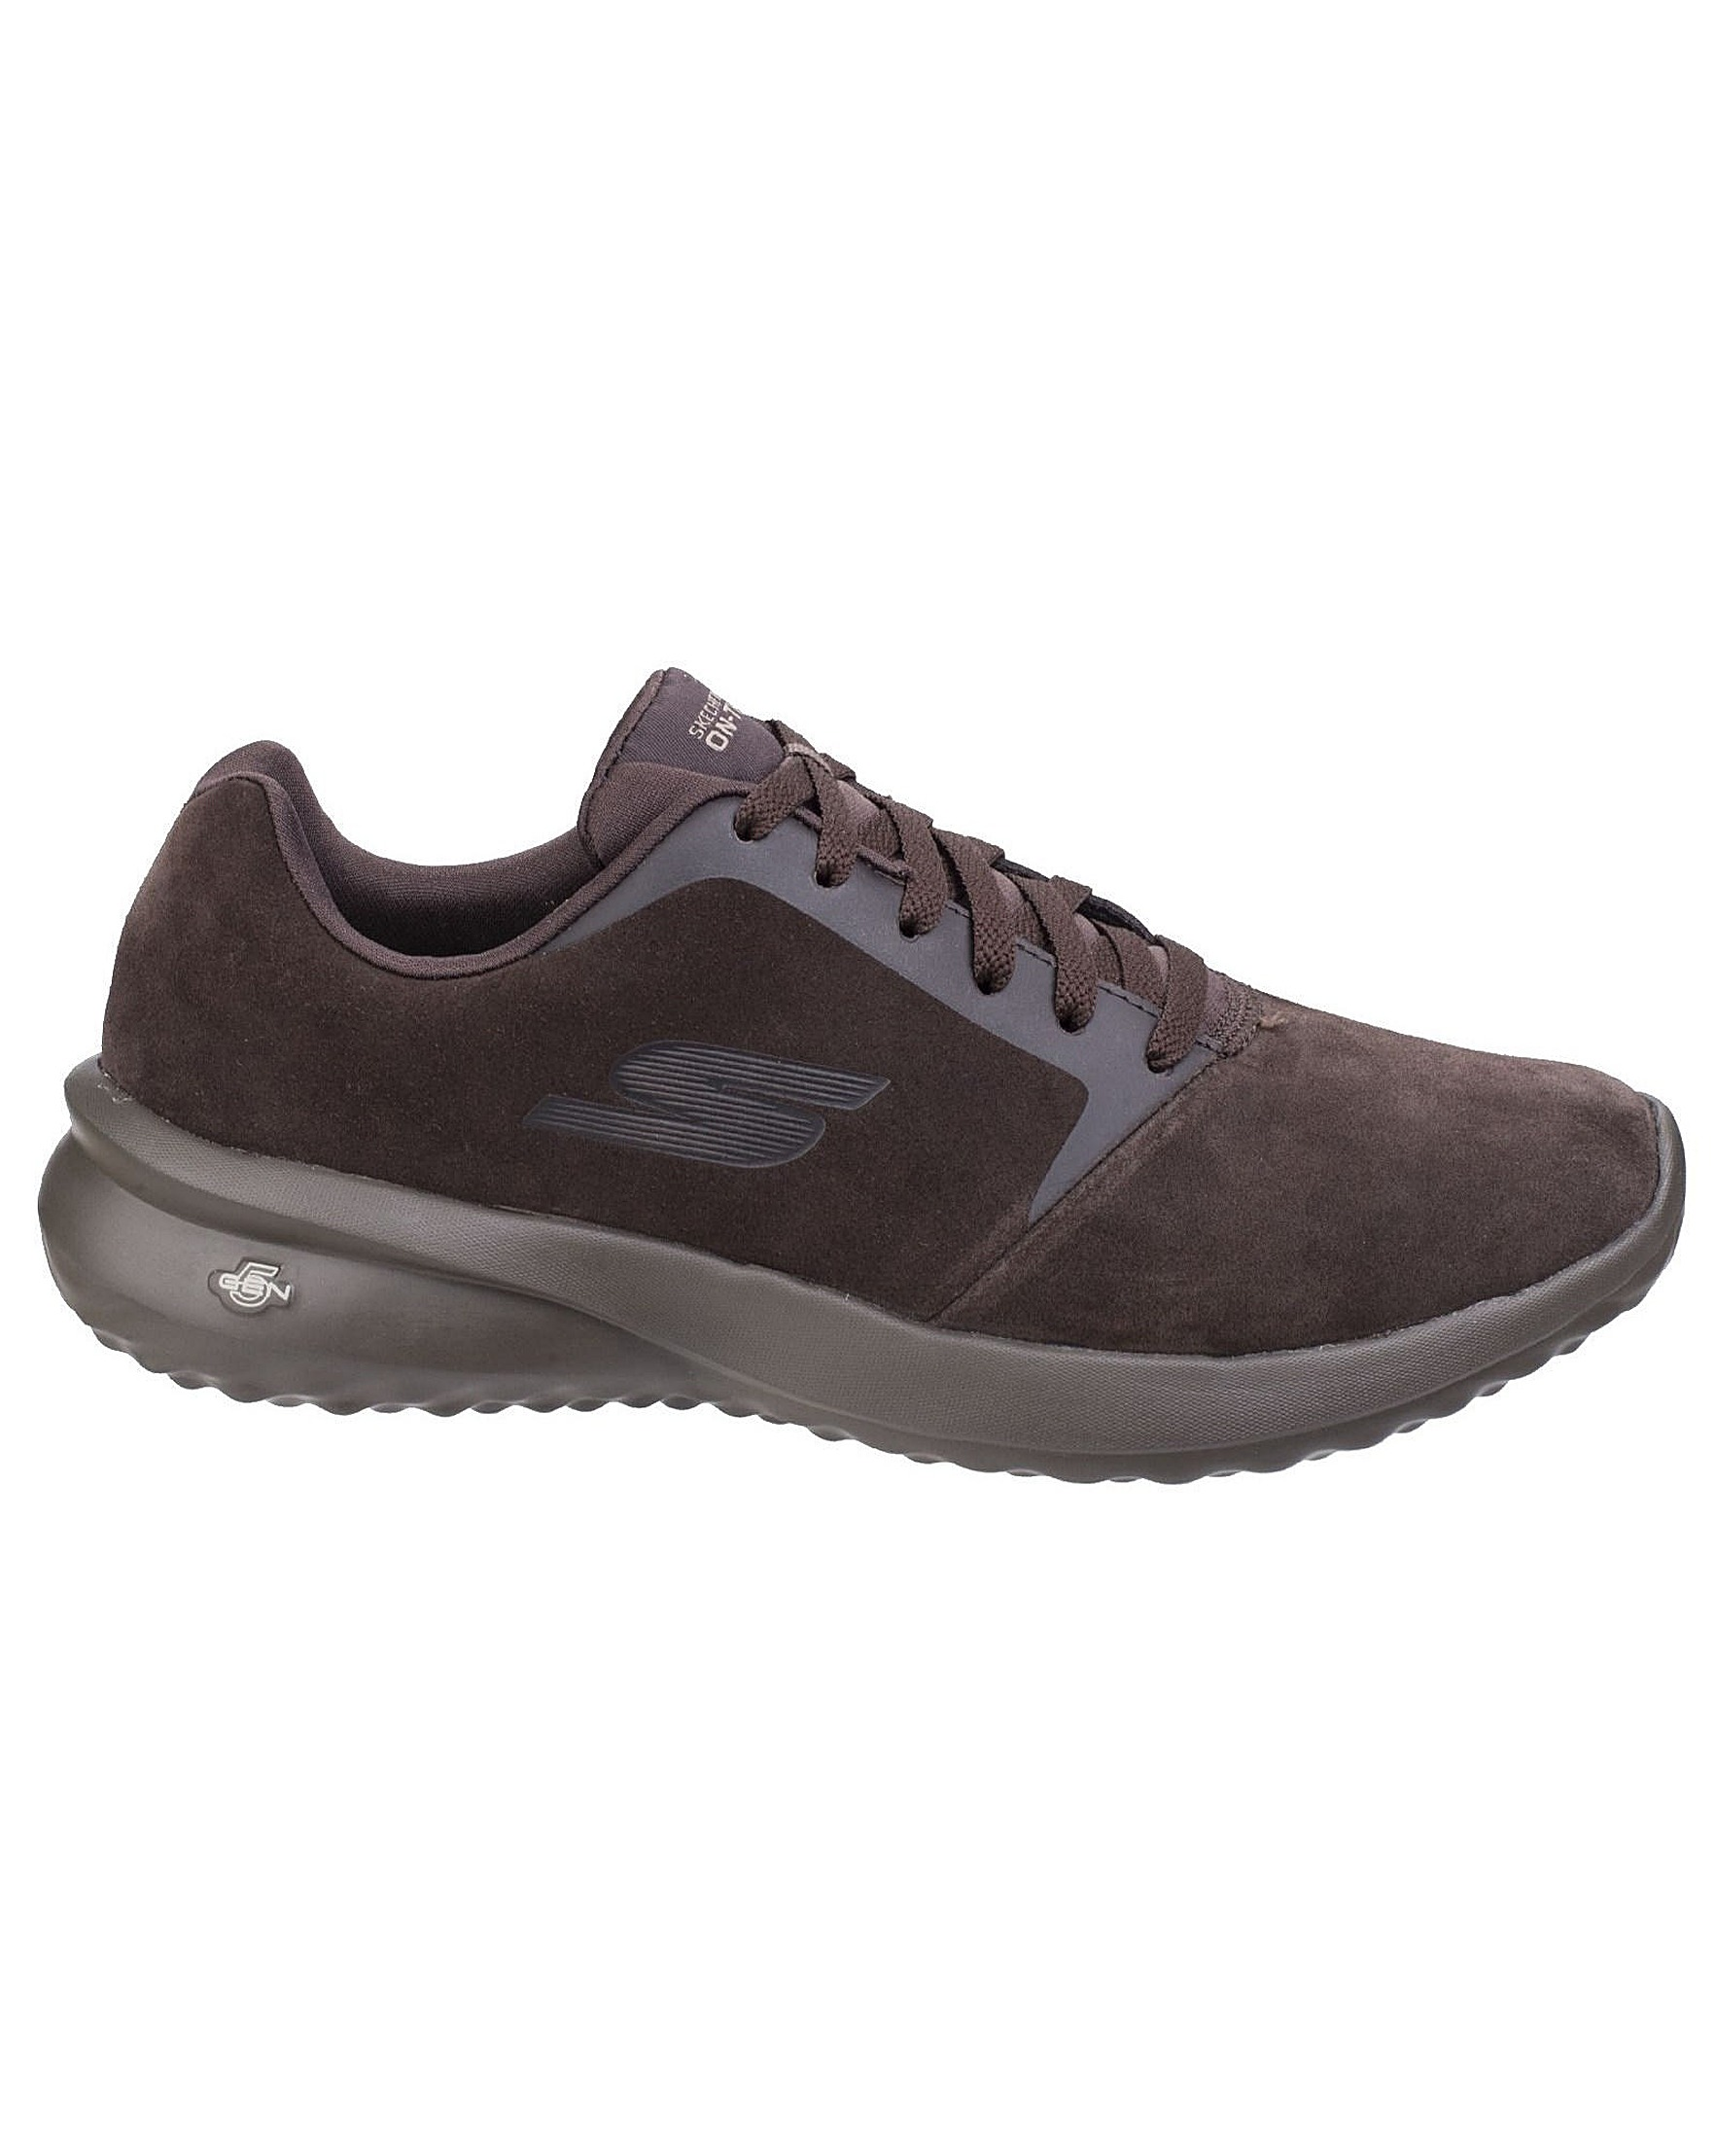 ab9f47688481 Skechers On The Go City 3.0 Mens Trainer